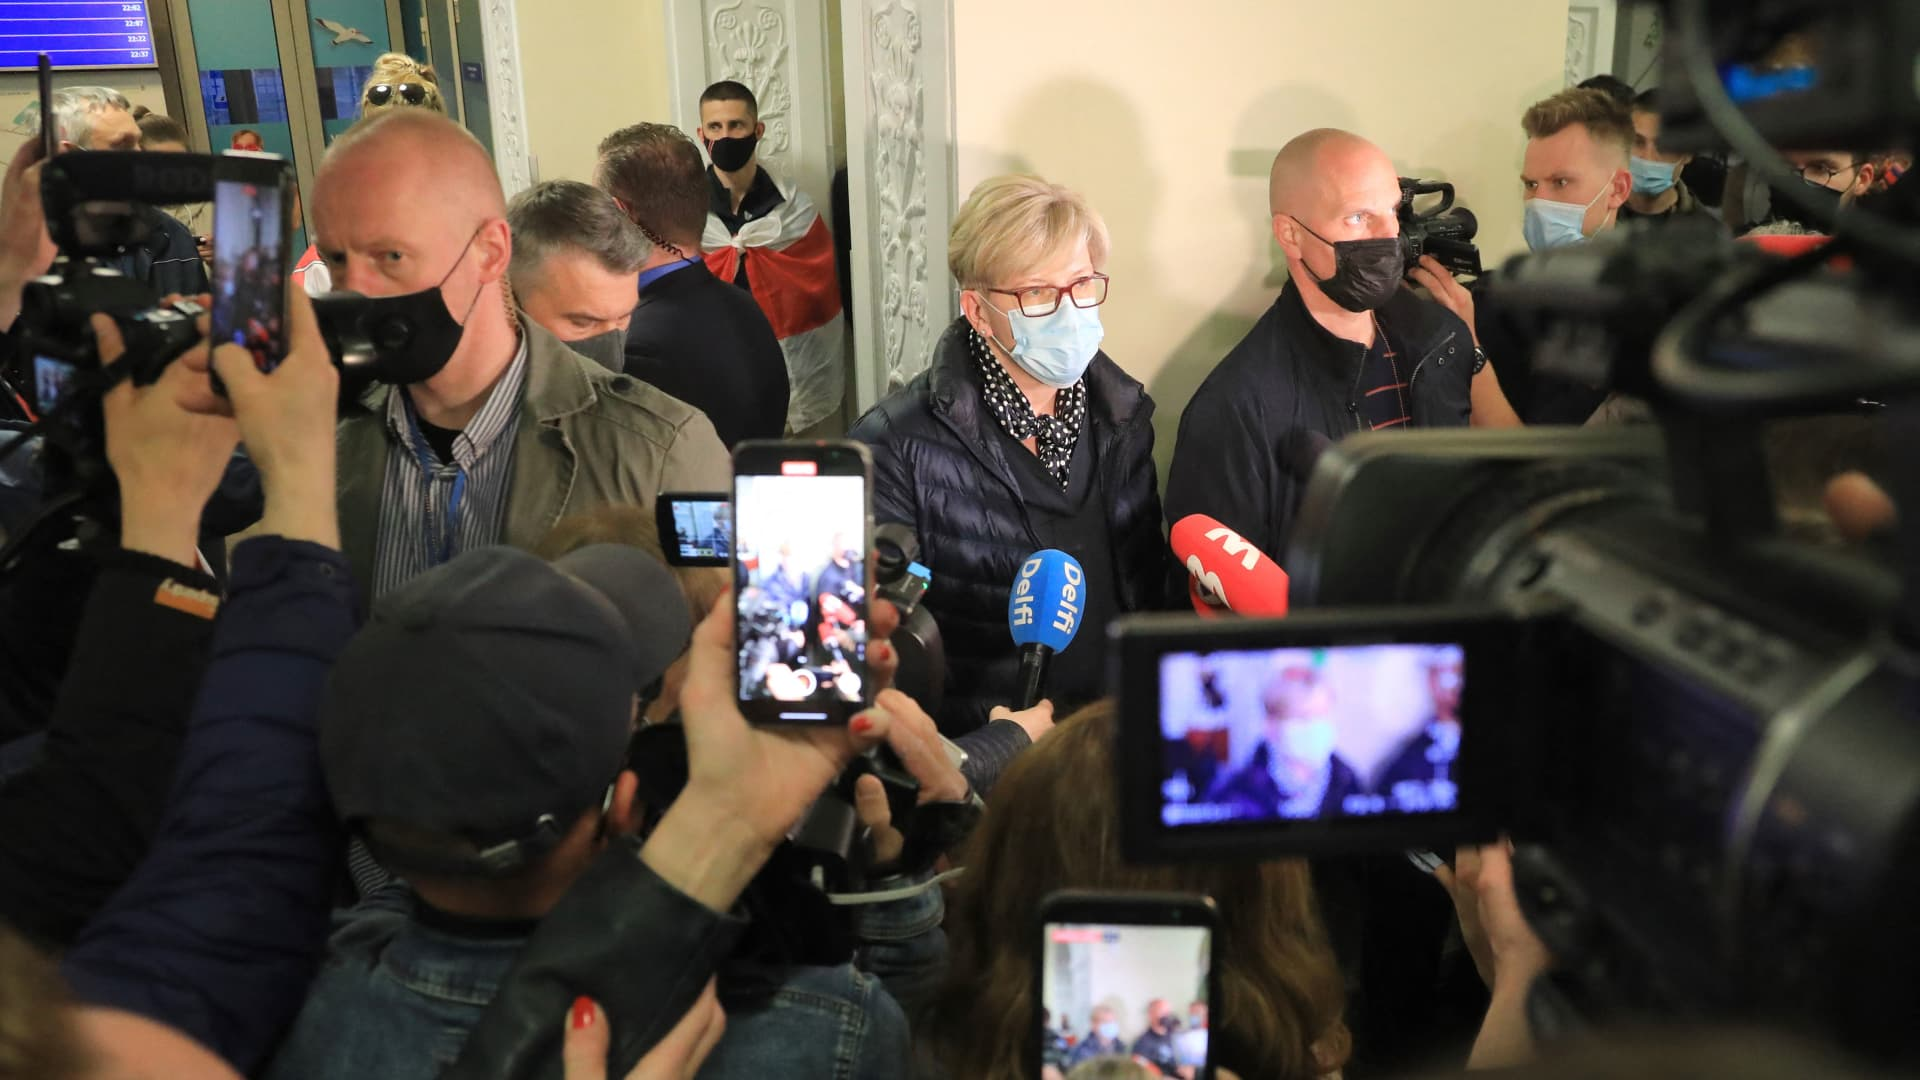 Lithuanian Prime Minister Ingrida Simonyte (C) speaks to journalists at Vilnius International Airport on May 23, 2021, following the landing of the Ryanair passenger plane.